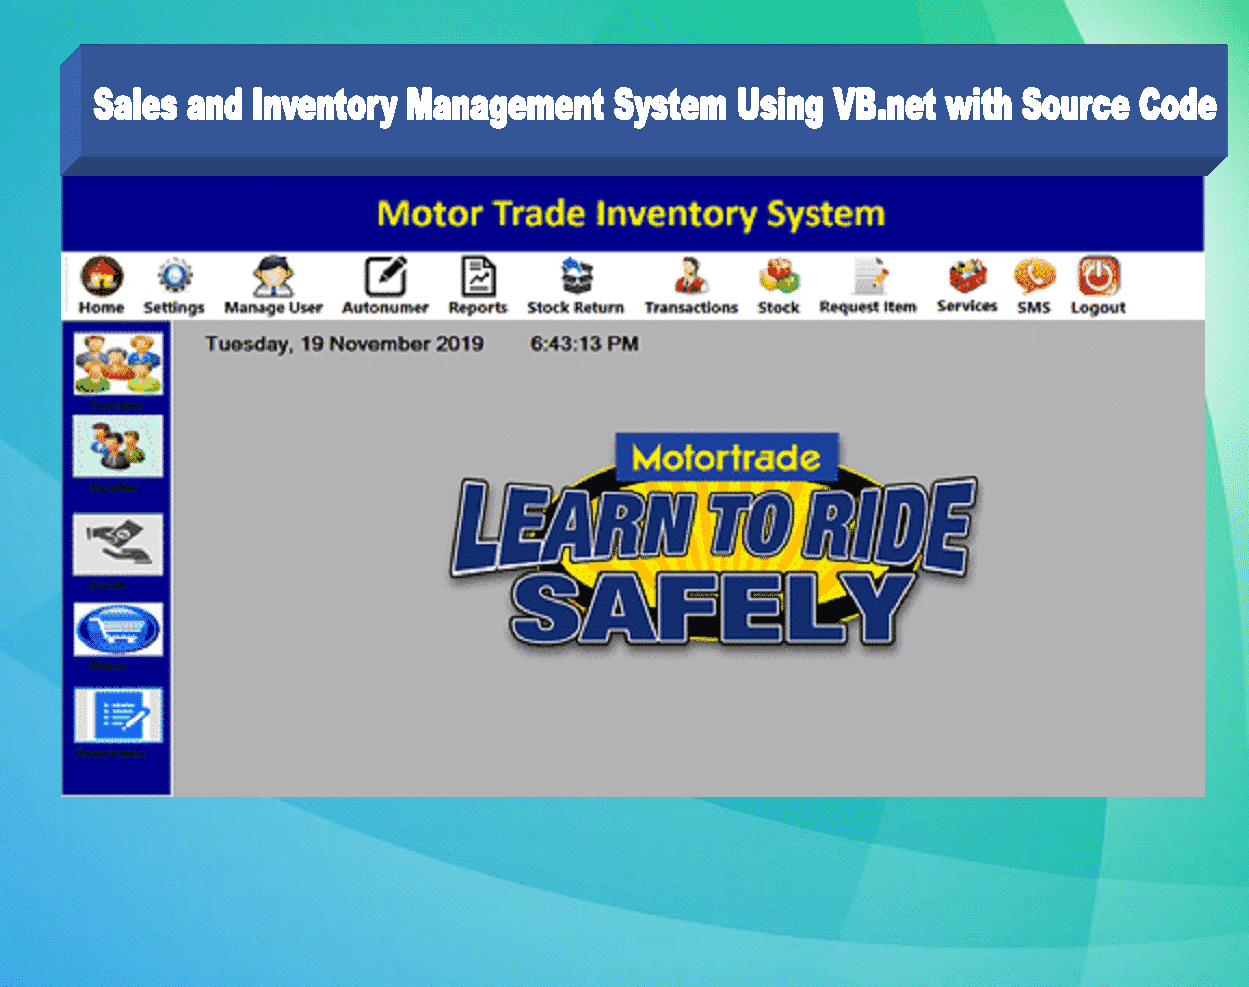 Sales and Inventory Management System Project in VB.Net Source Code